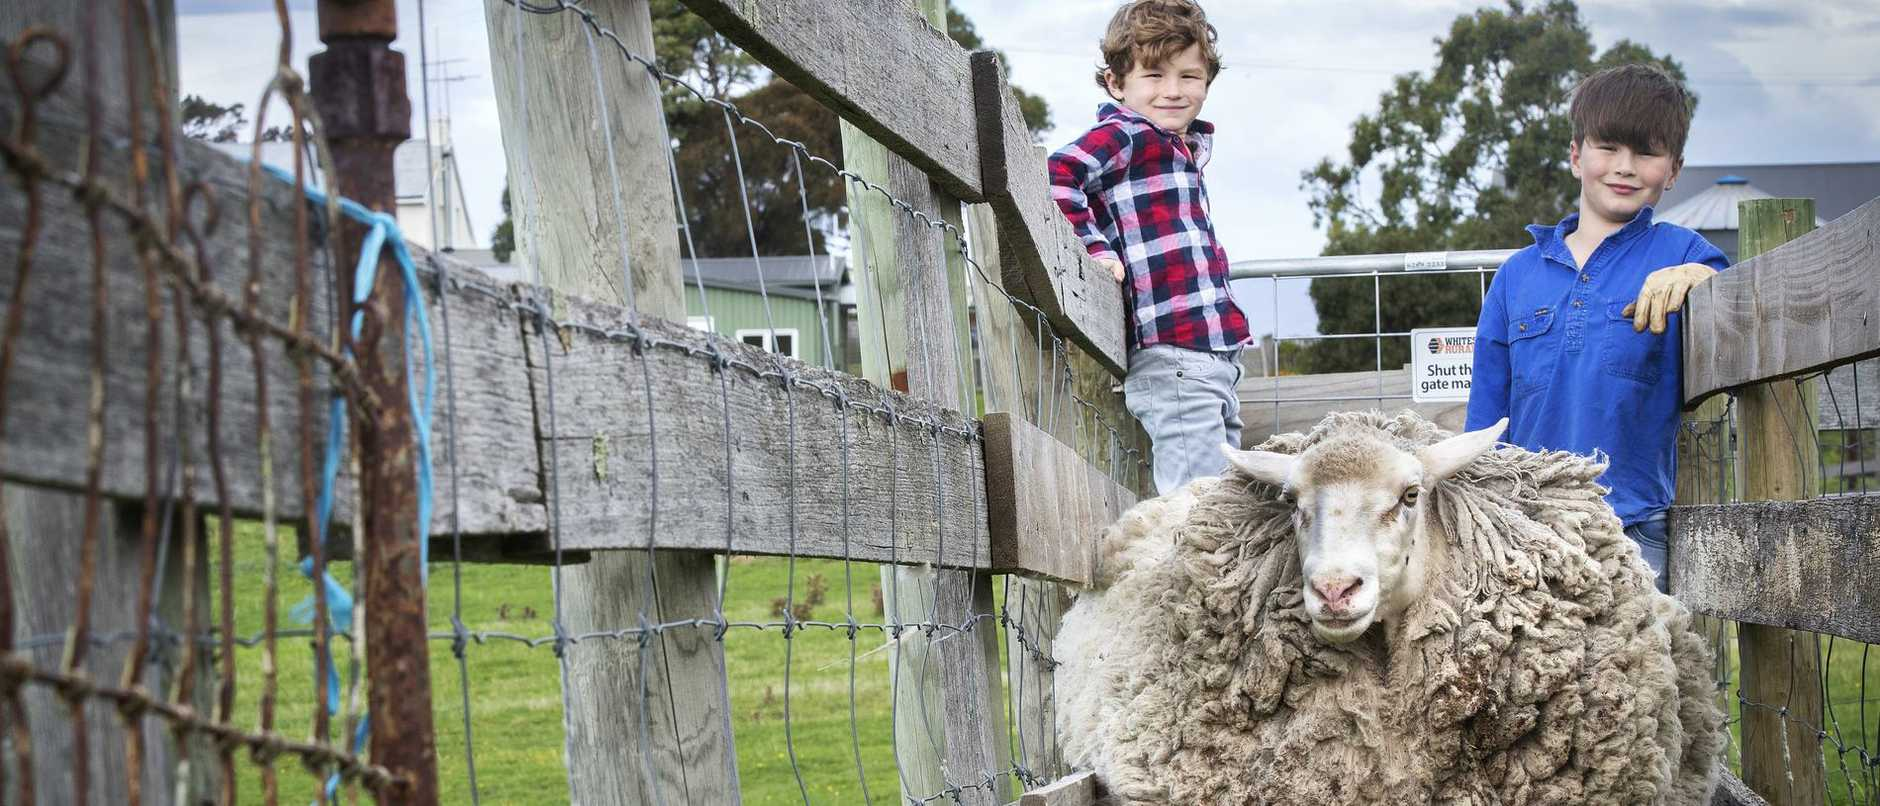 A sheep who fled her flock during the 2013 bushfires has been reunited with family and there are now big plans for her impressive fleece.